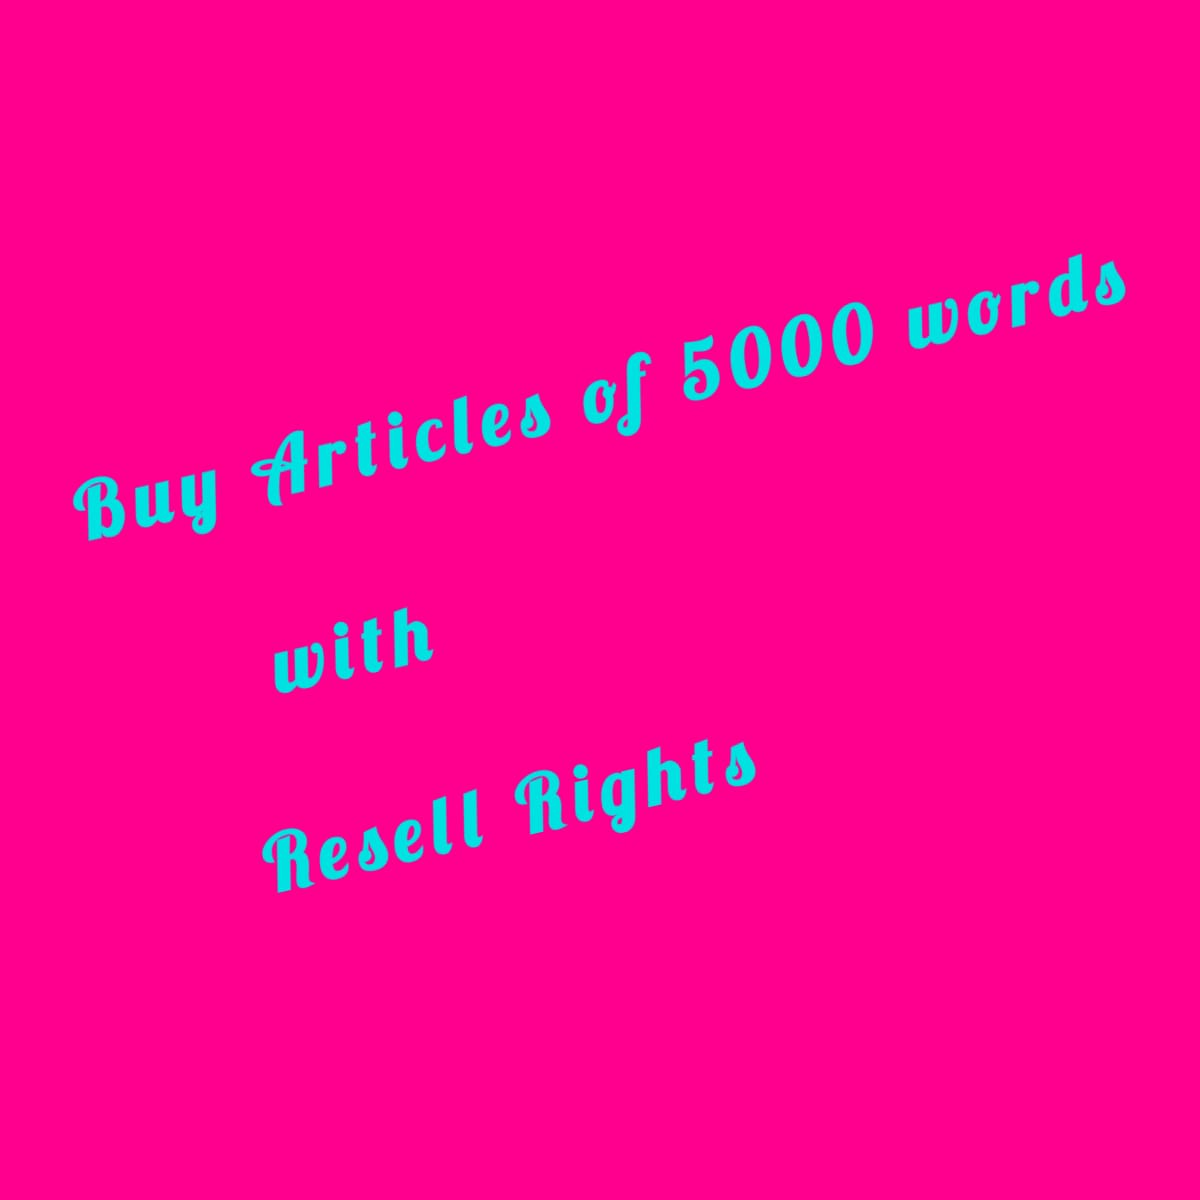 Buy Articles of 5000 words with Resell Rights